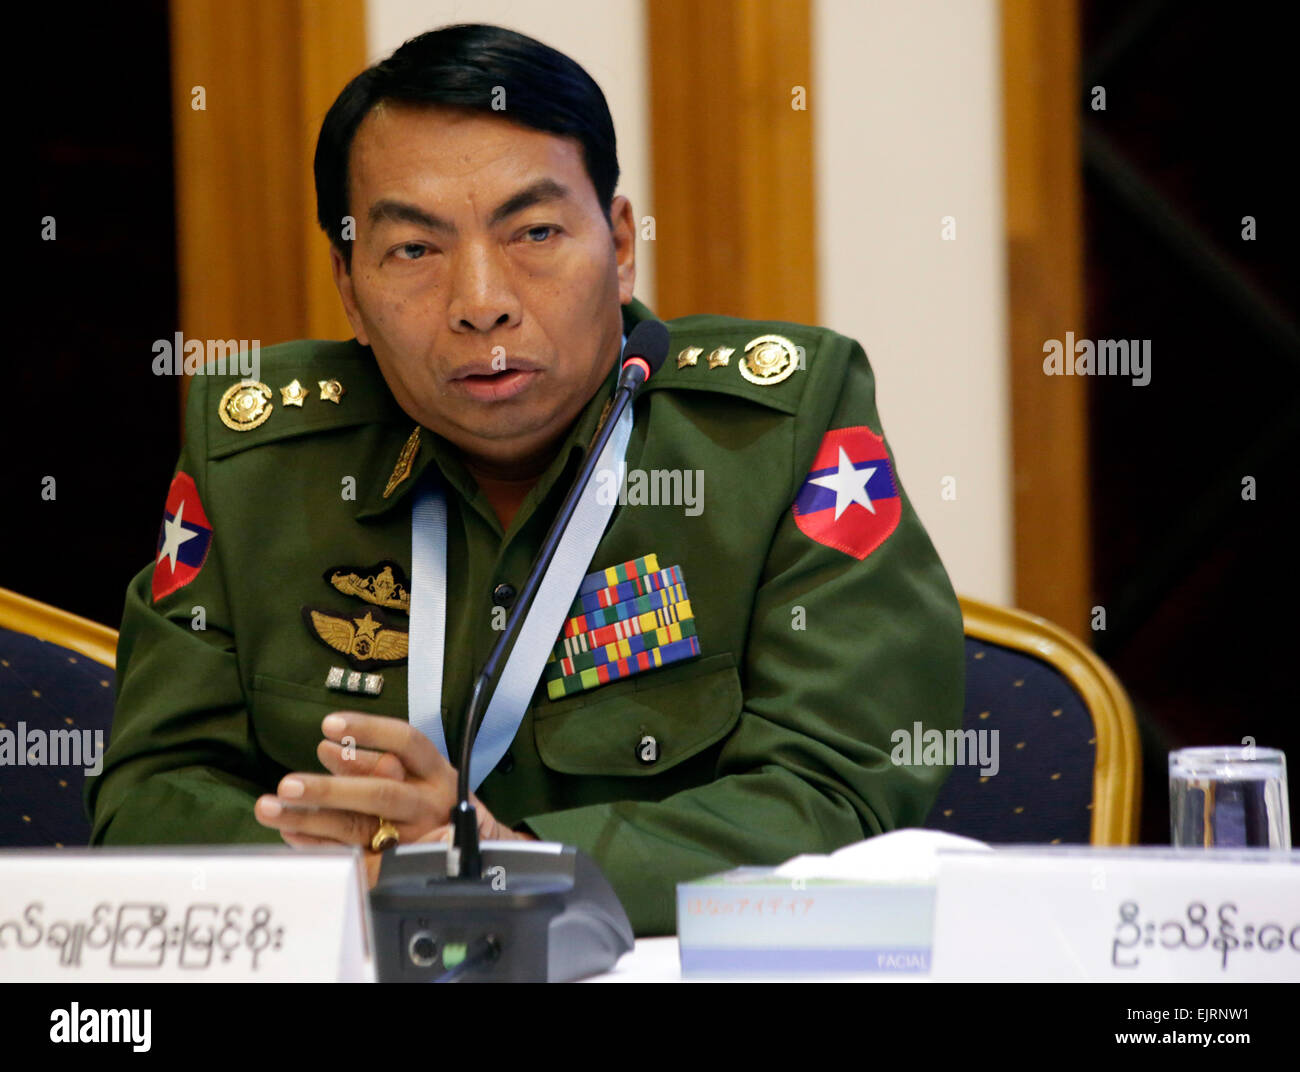 (150331) -- YANGON, March 31, 2015 (Xinhua) -- Myanmar Lieutenant-General Myint Soe speaks to media during a joint - Stock Image